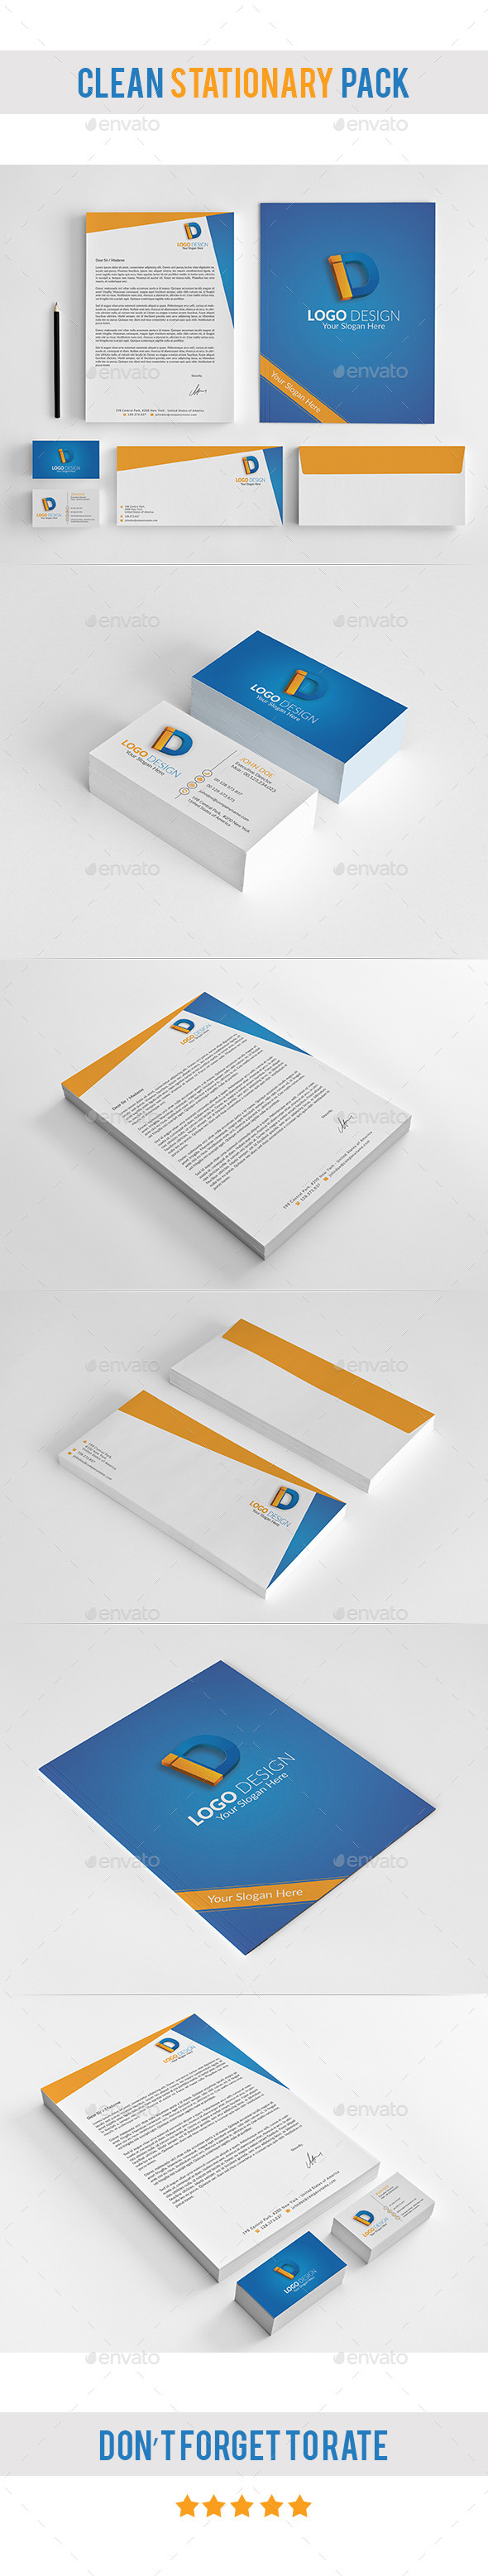 GraphicRiver Clean Stationary & Identity Templates PSD 11179251